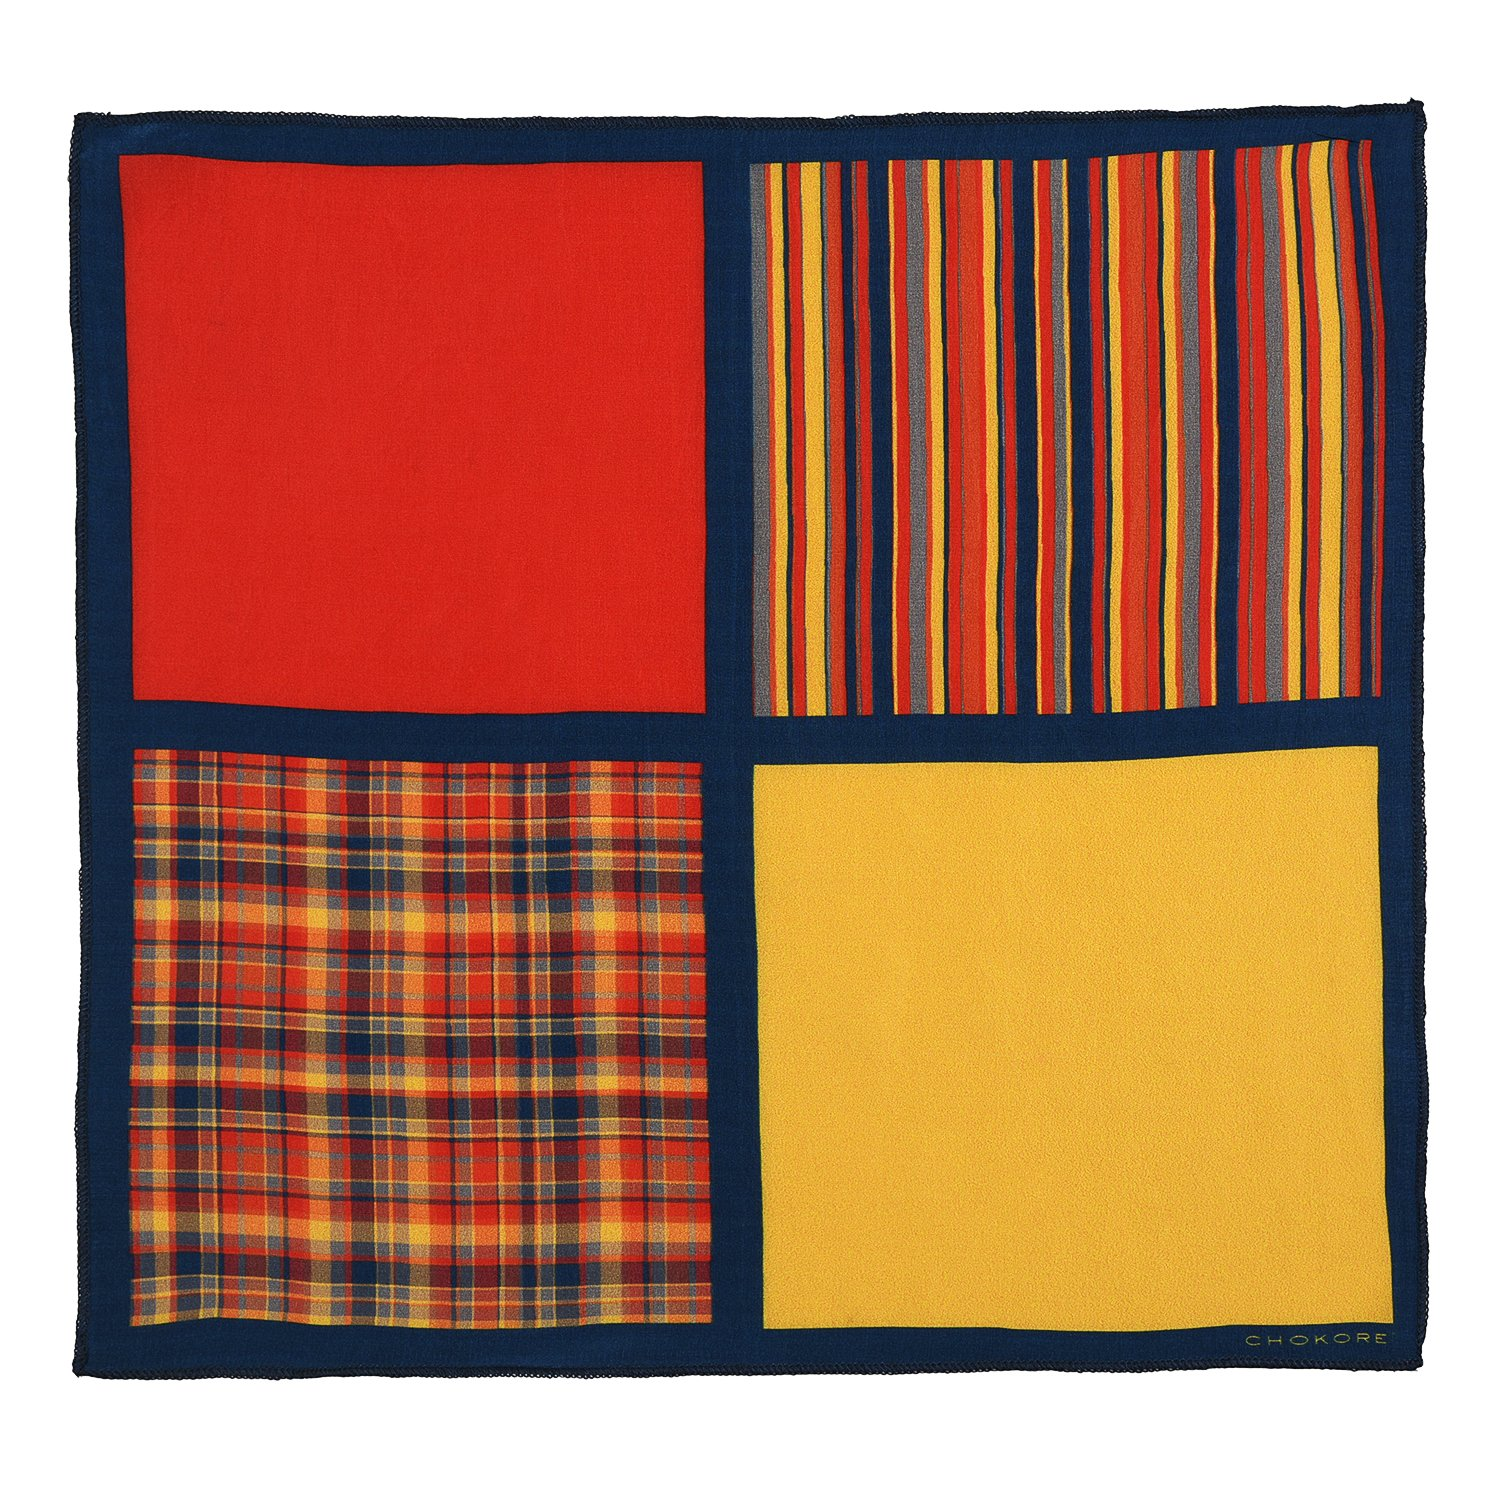 Chokore Two-in-One Red /& Yellow Silk Pocket Square from the Plaids Line